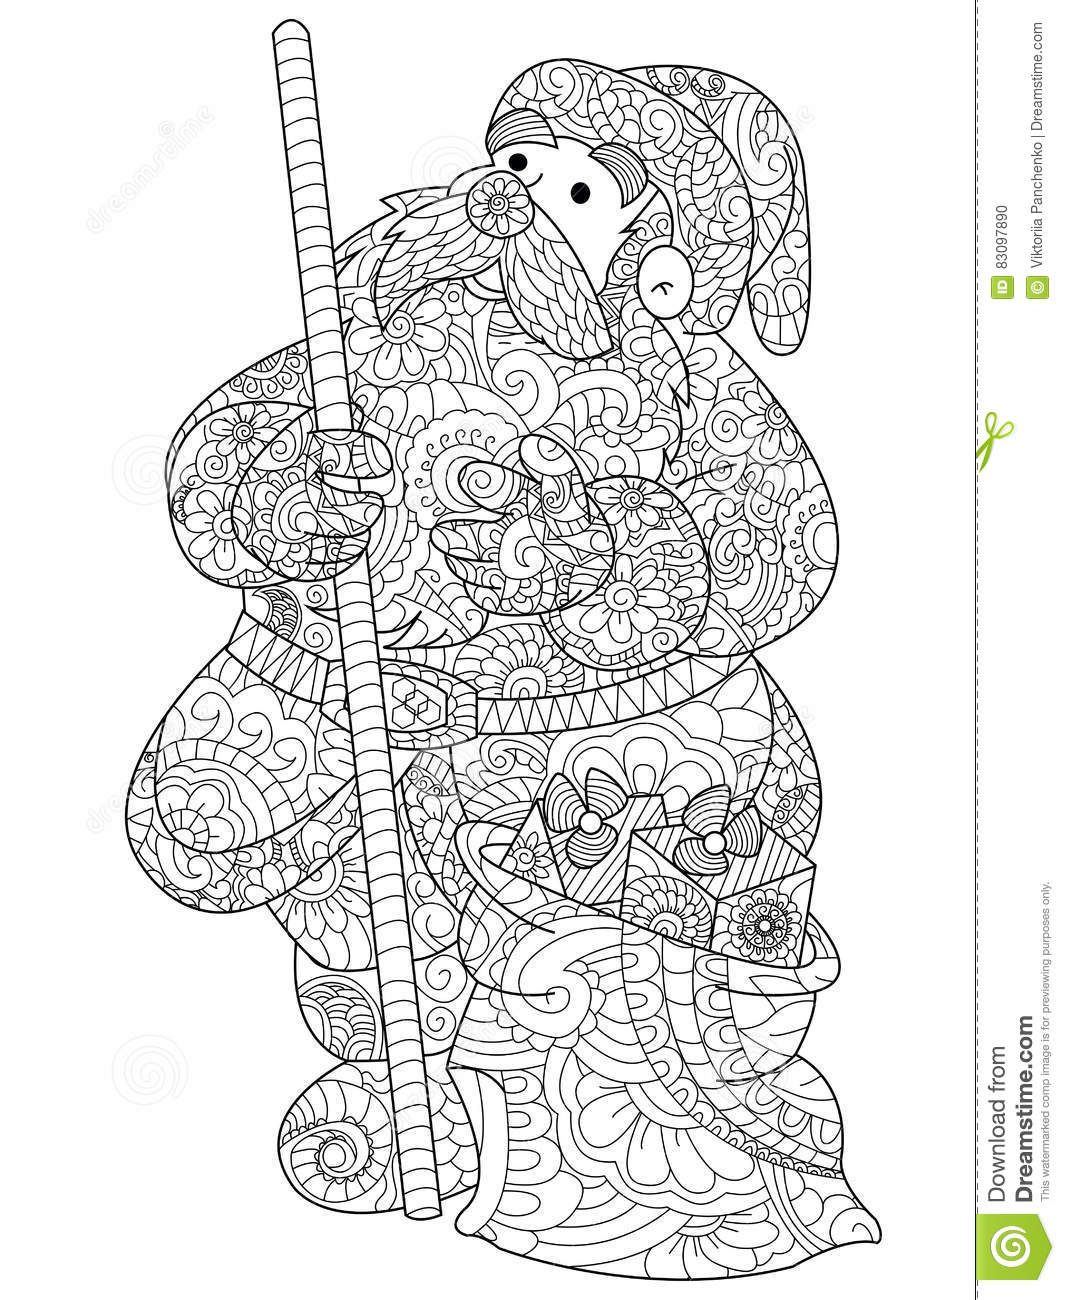 Santa Claus Coloring Vector For Adults Stock Vector - Illustration ...